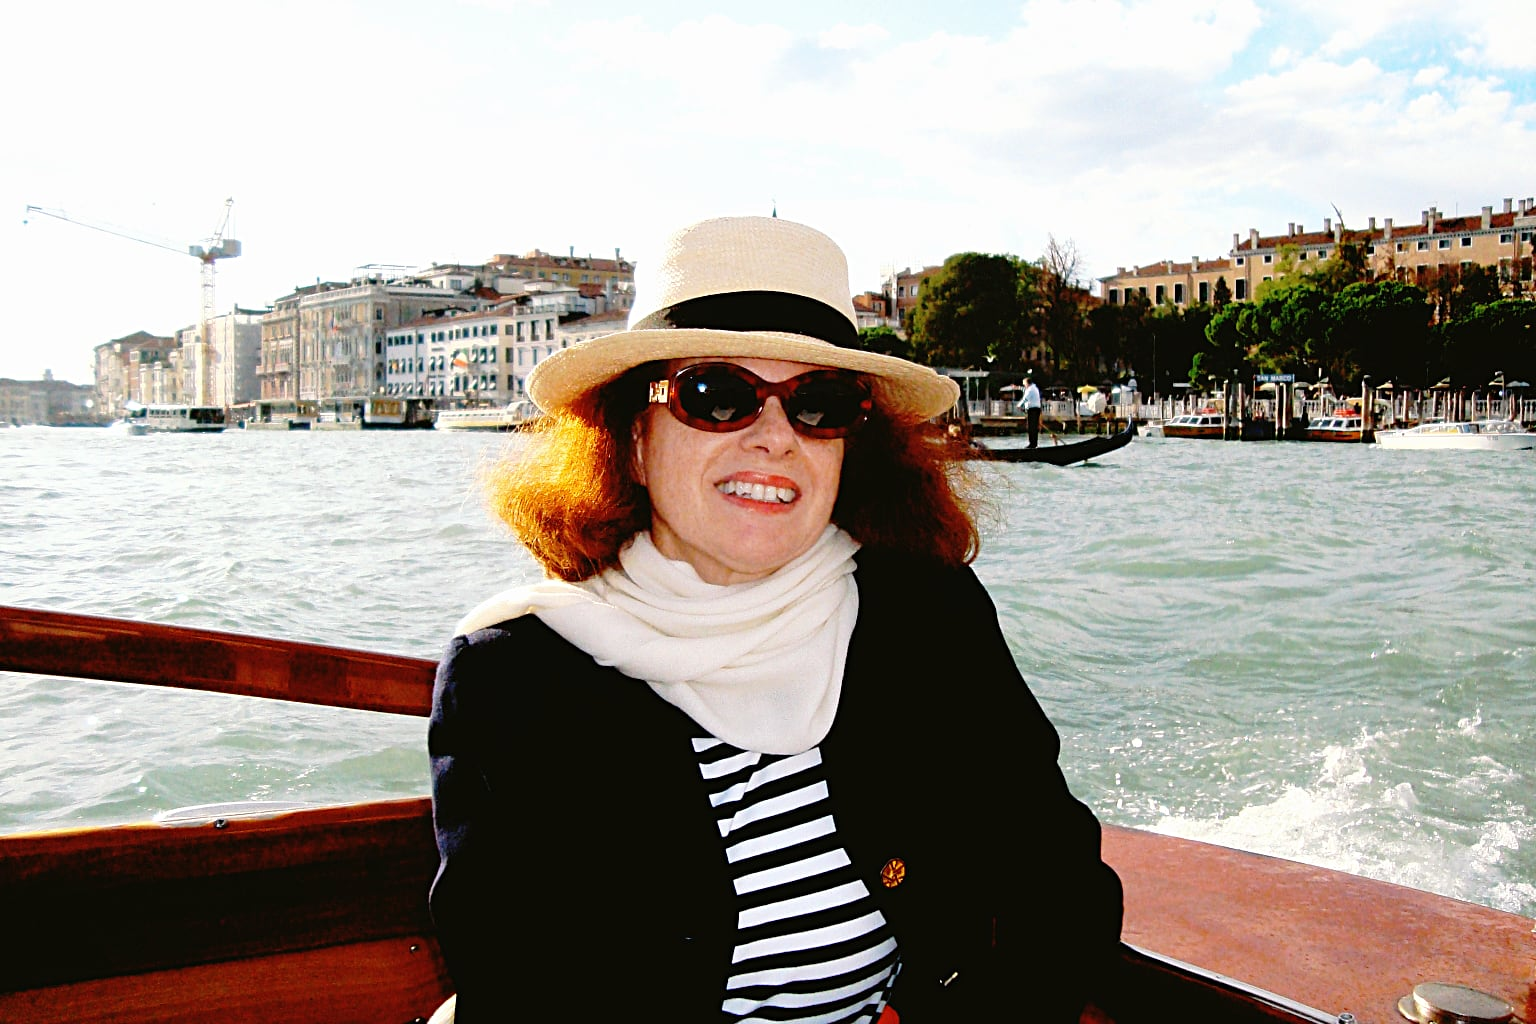 The author in Venice, Italy